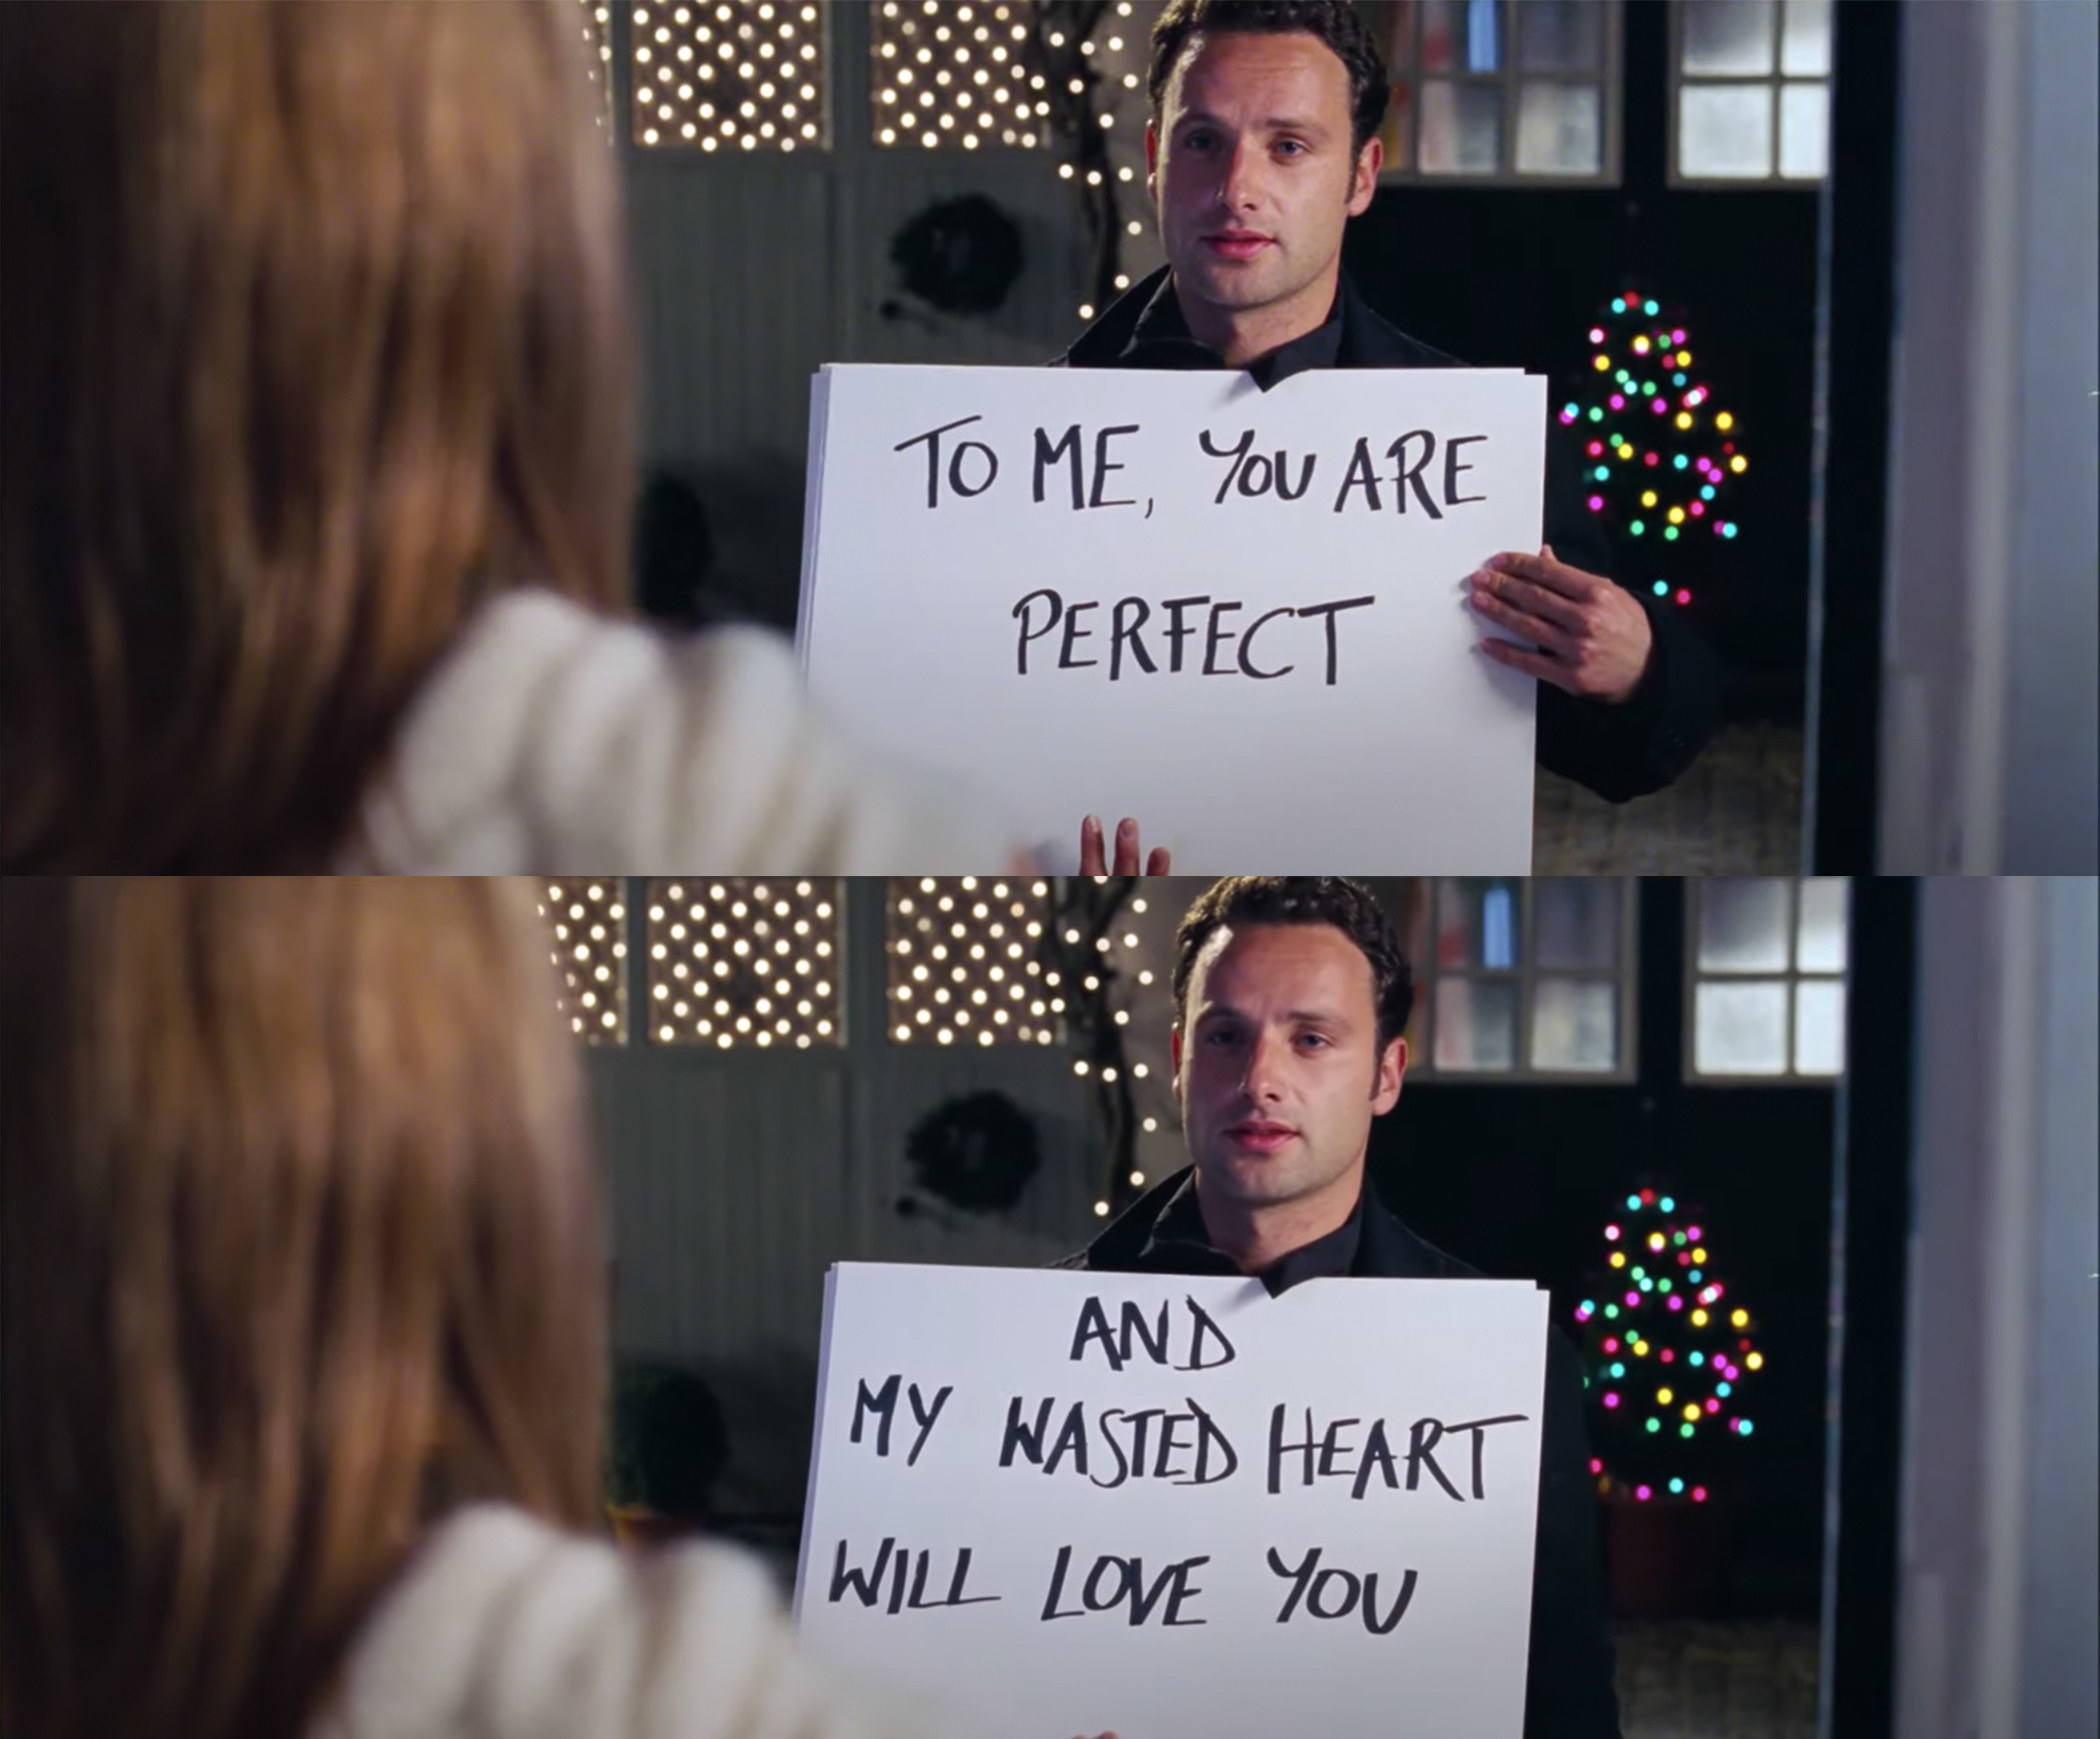 """His posters say, """"to me you are perfect, and my wasted heart will love you"""""""